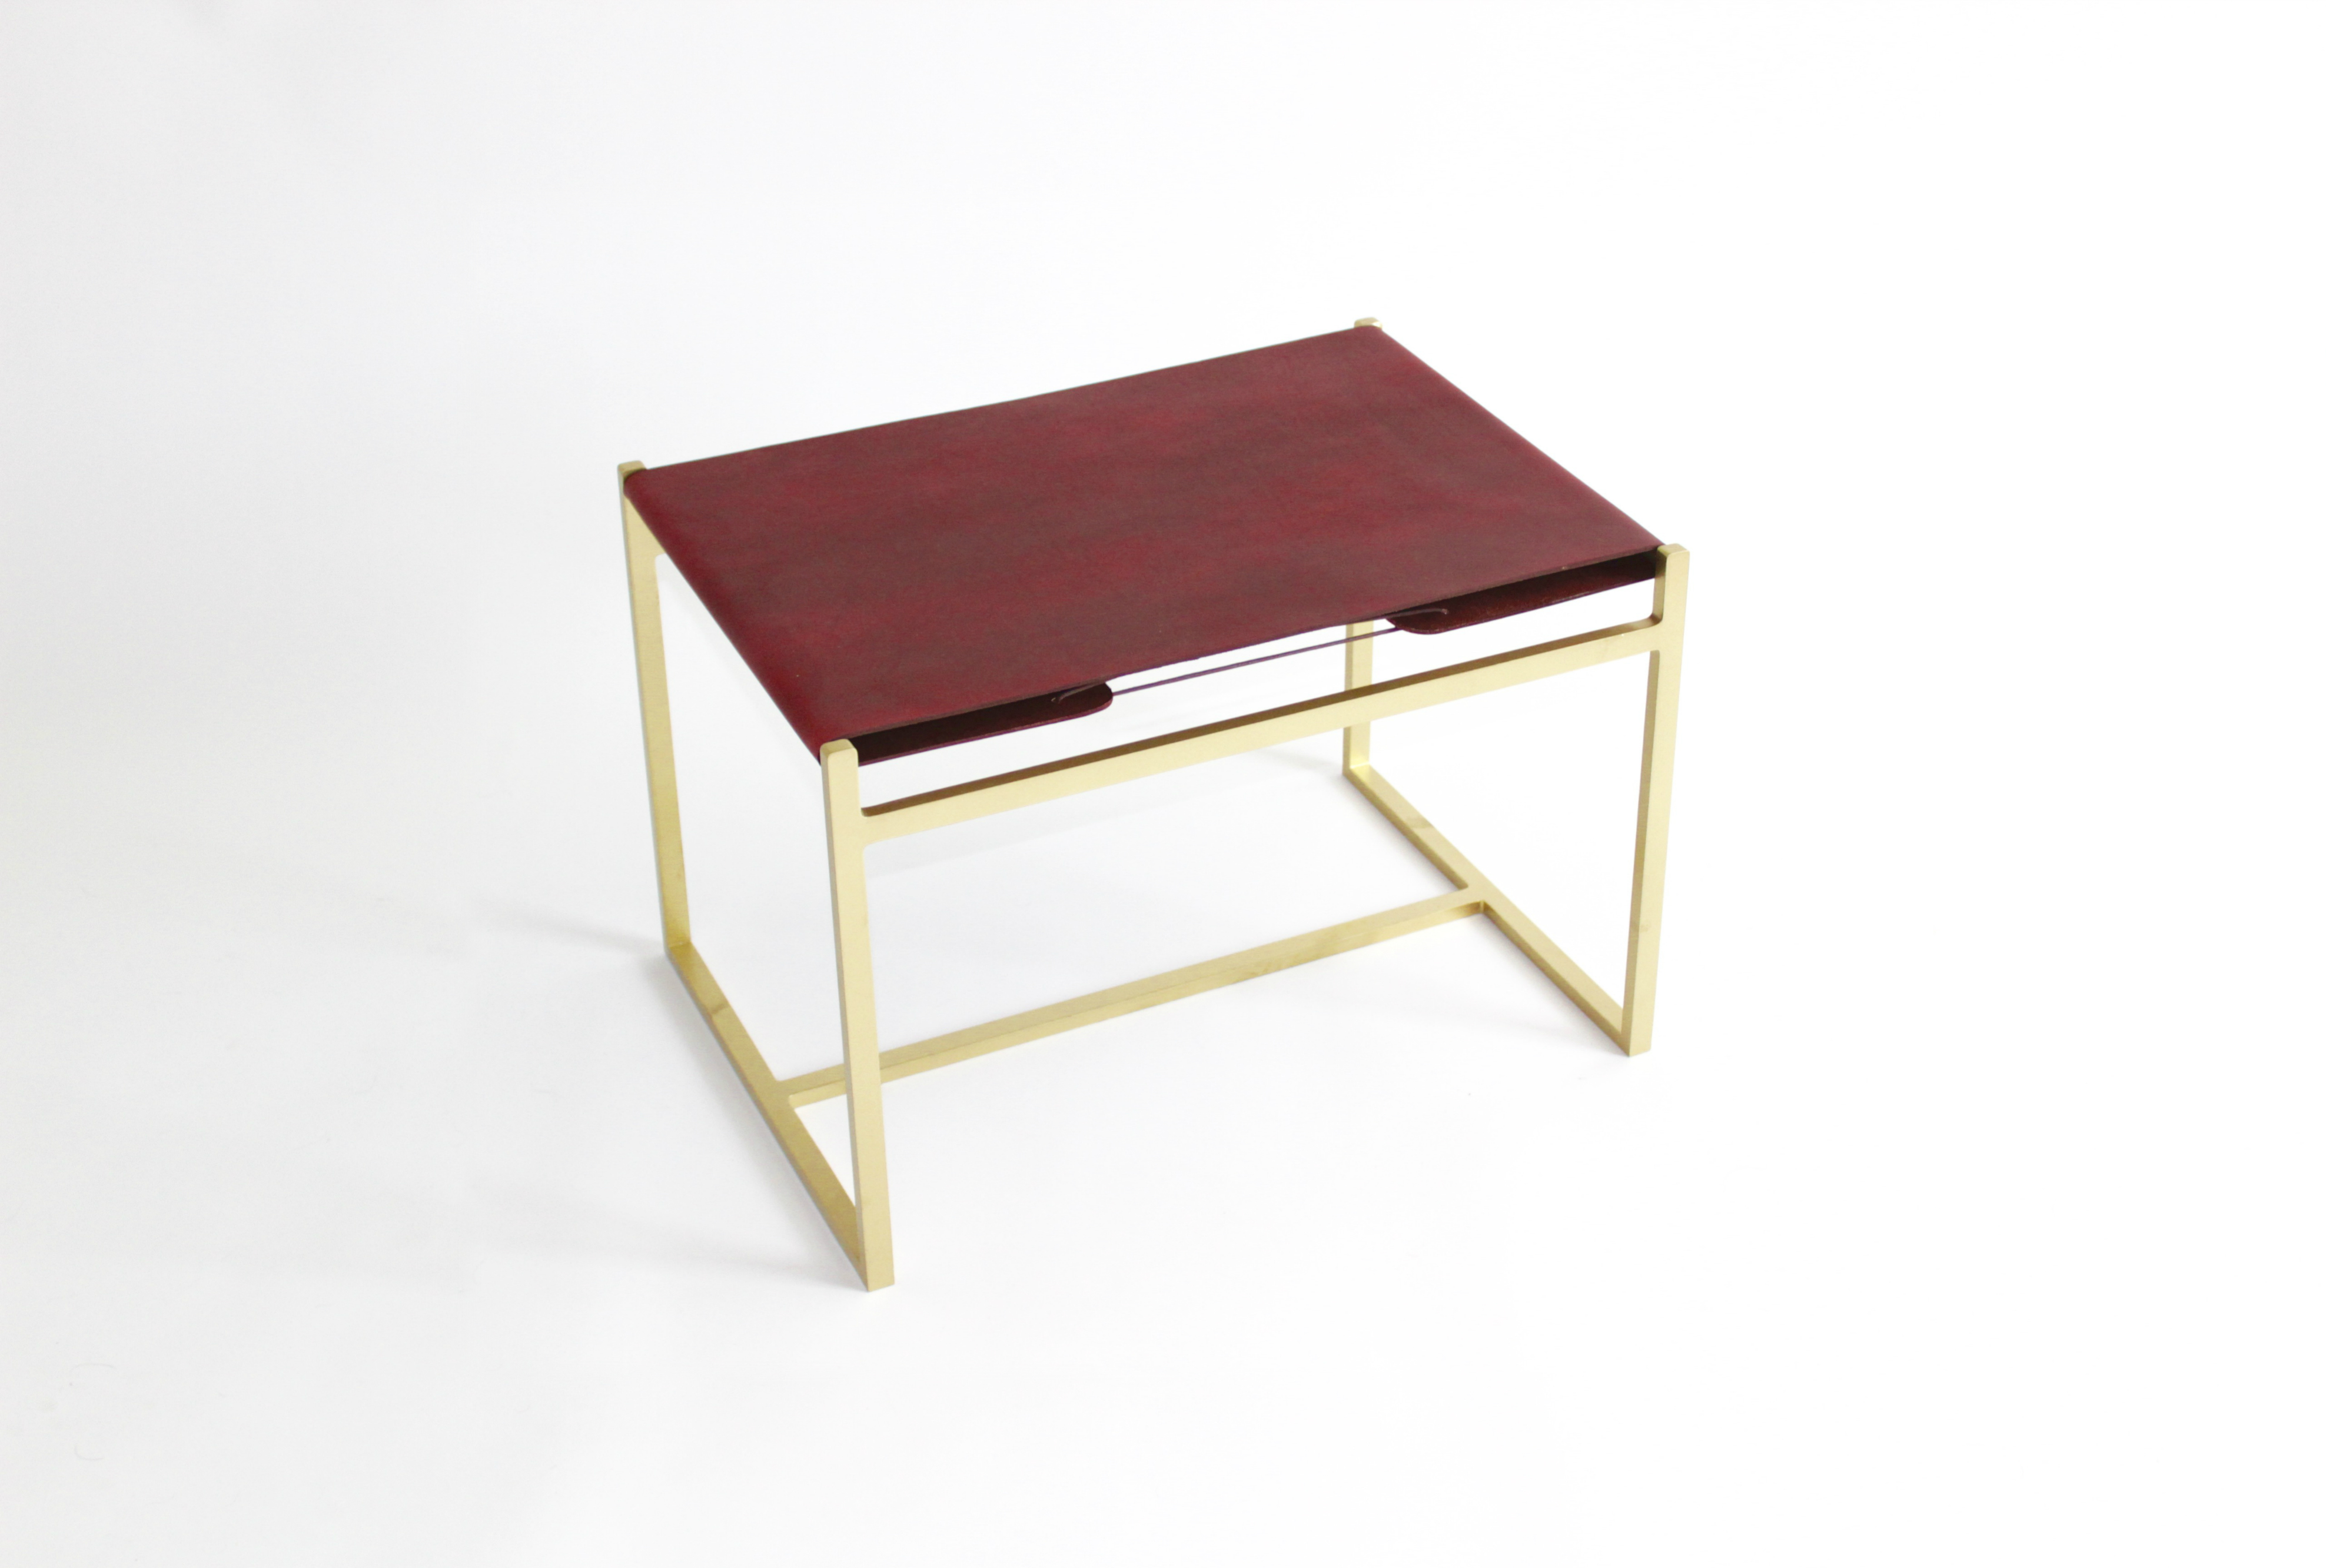 LS1 Brass & Leather Ottoman